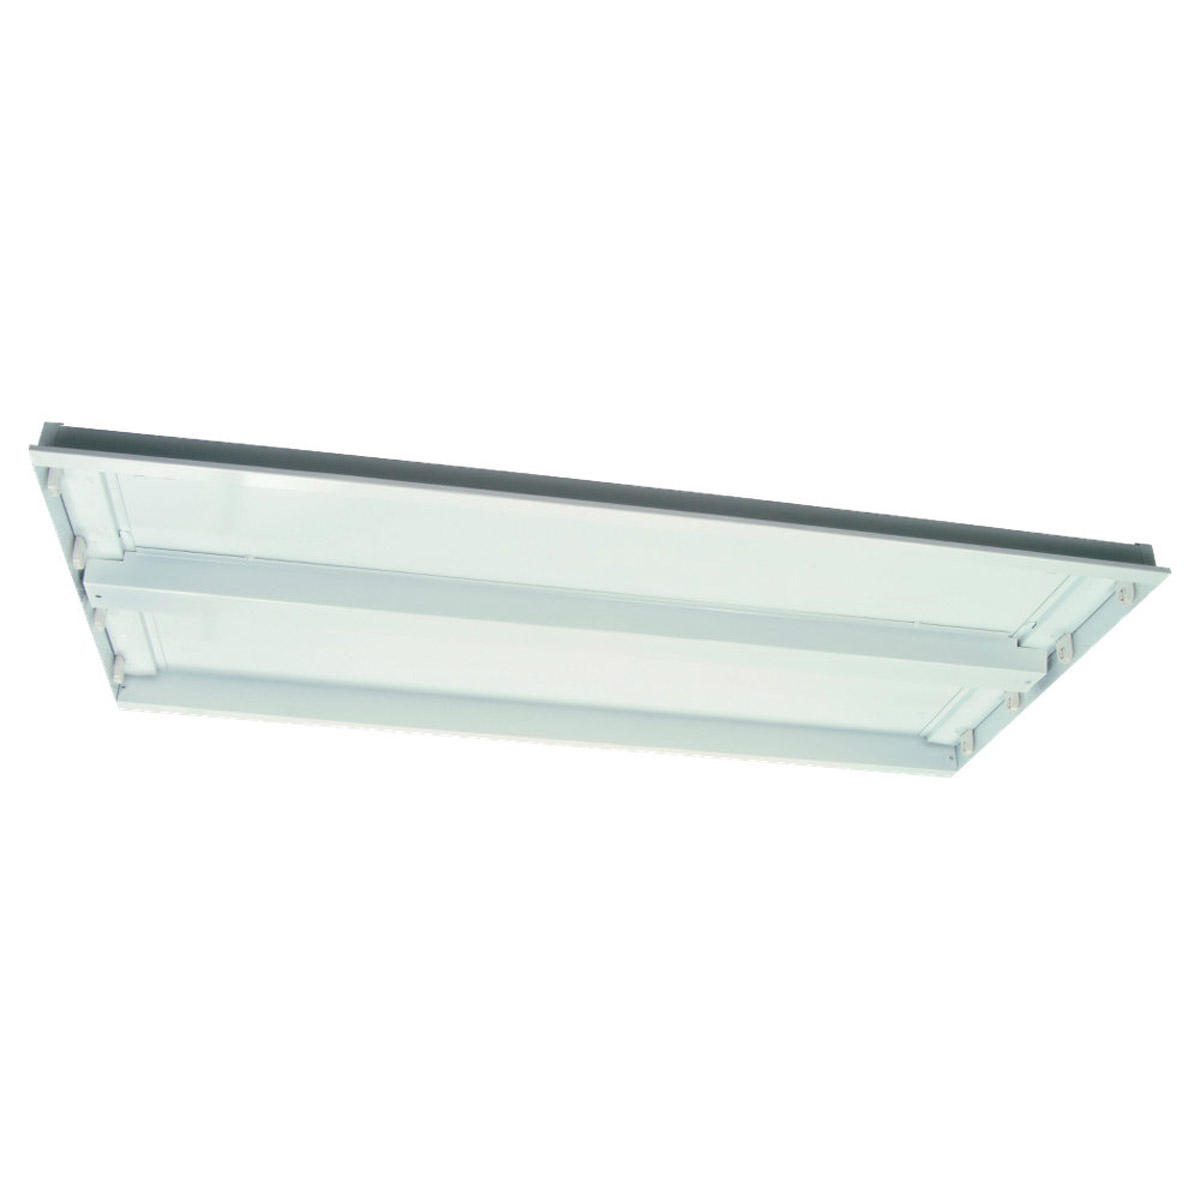 Sea Gull Lighting Signature 4 Light Fluorescent Chassis in White 9513LE-15